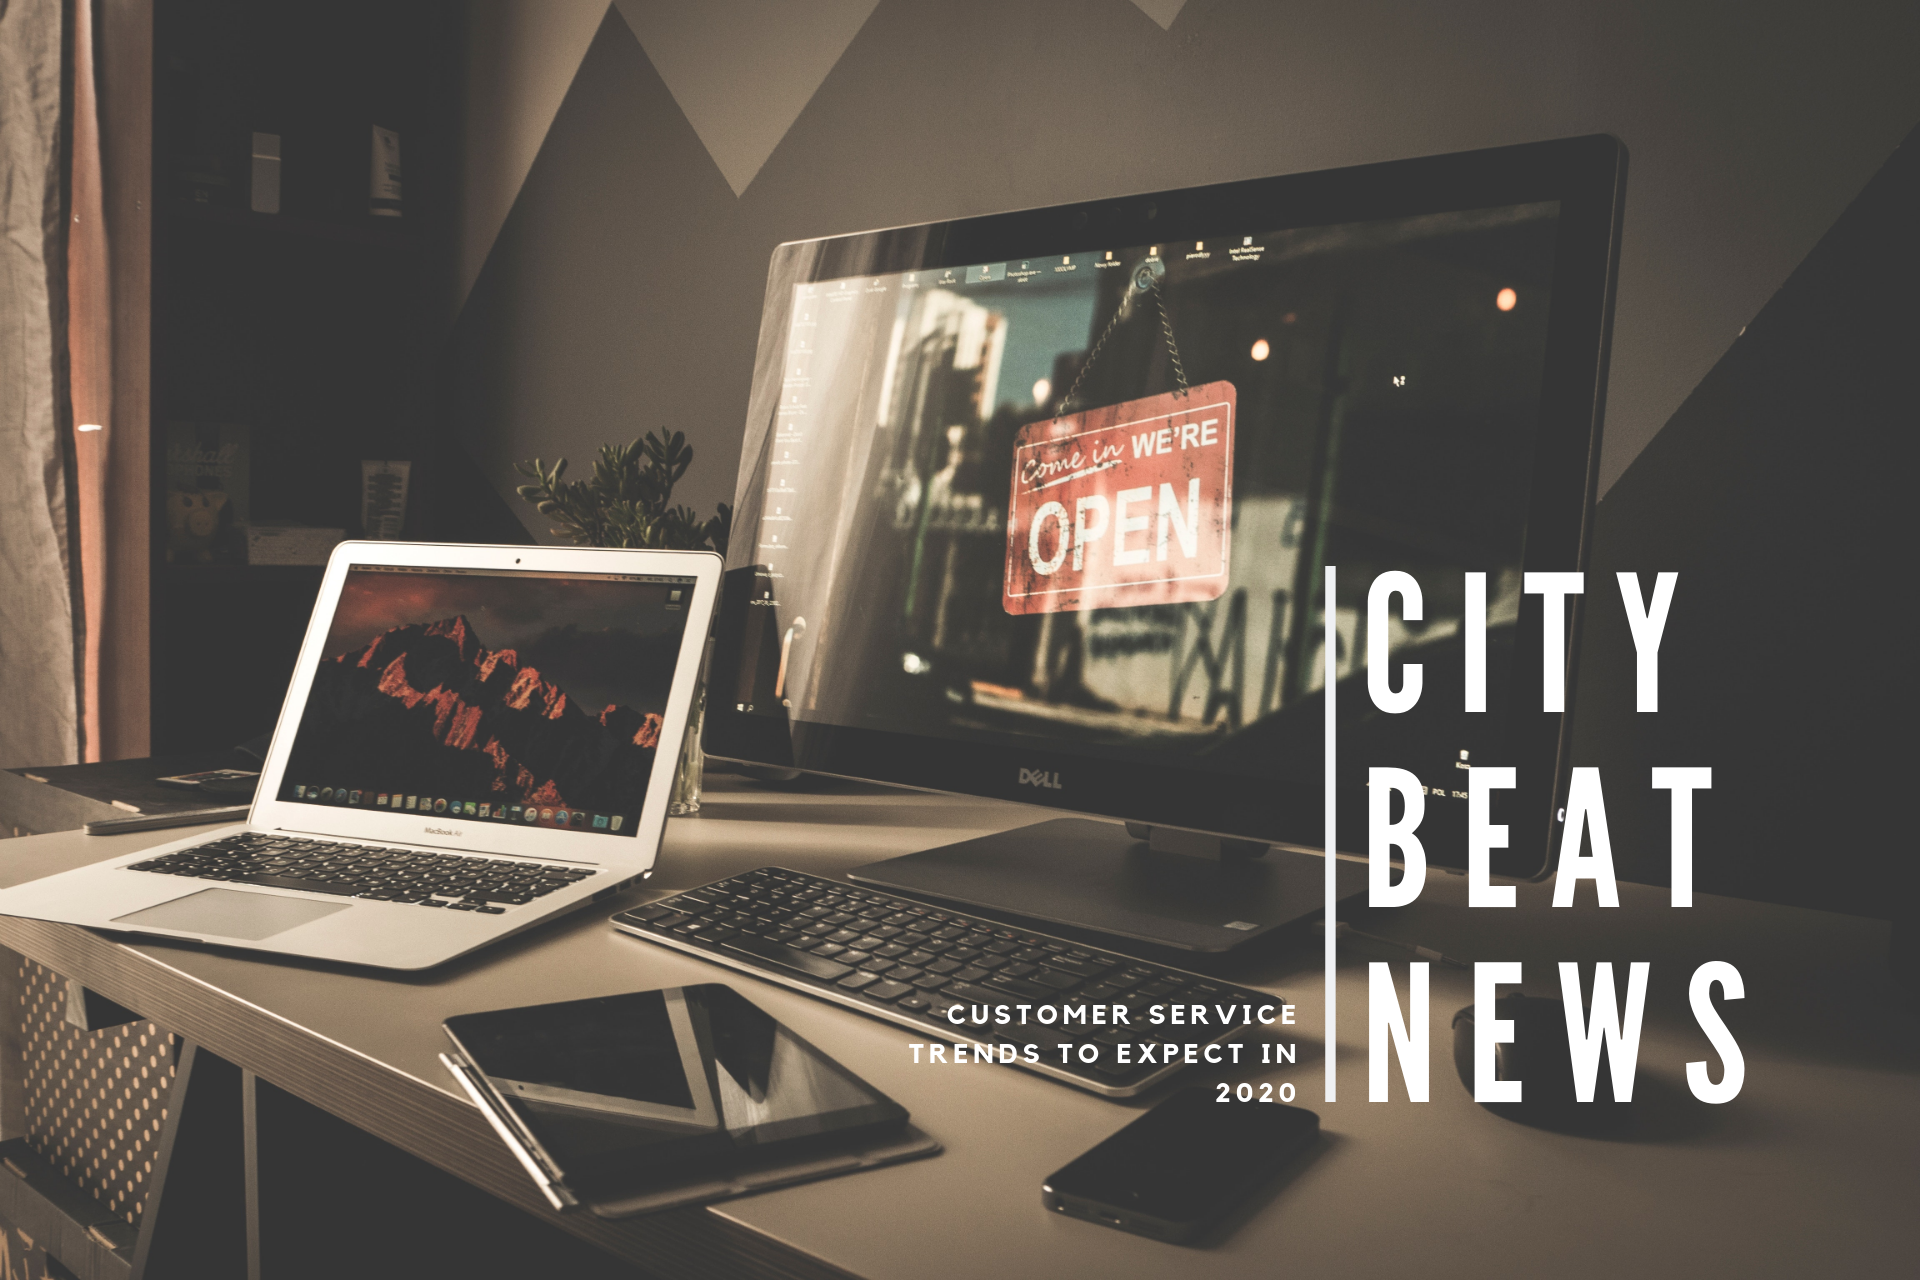 City Beat News Customer Service Trends Legitimate